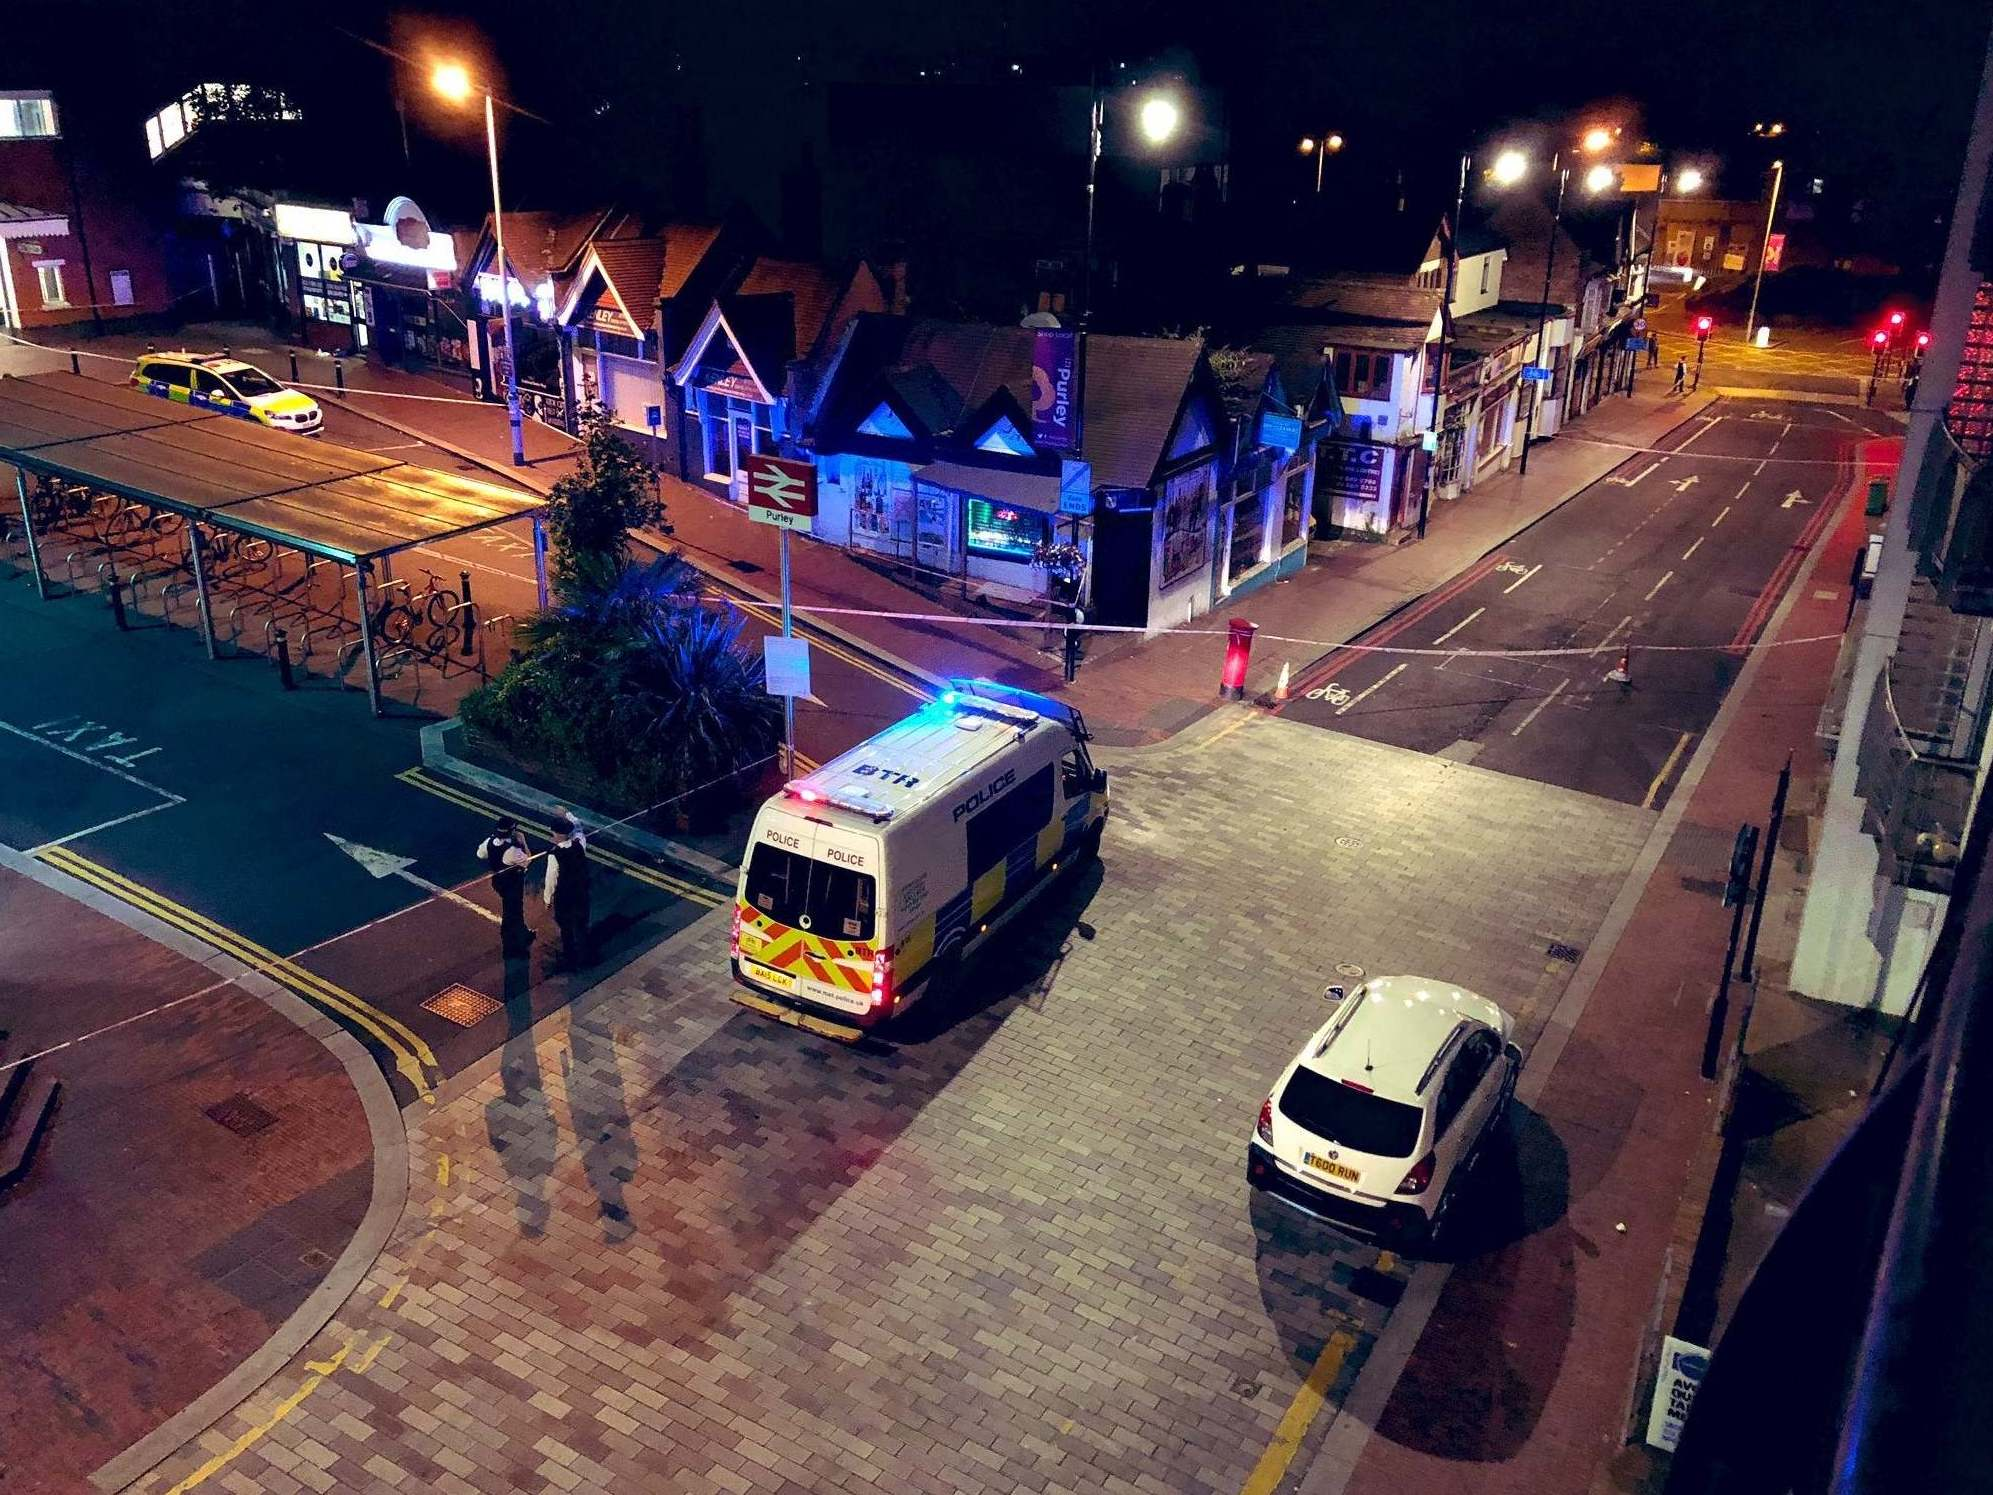 stabbing - latest news, breaking stories and comment - The Independent